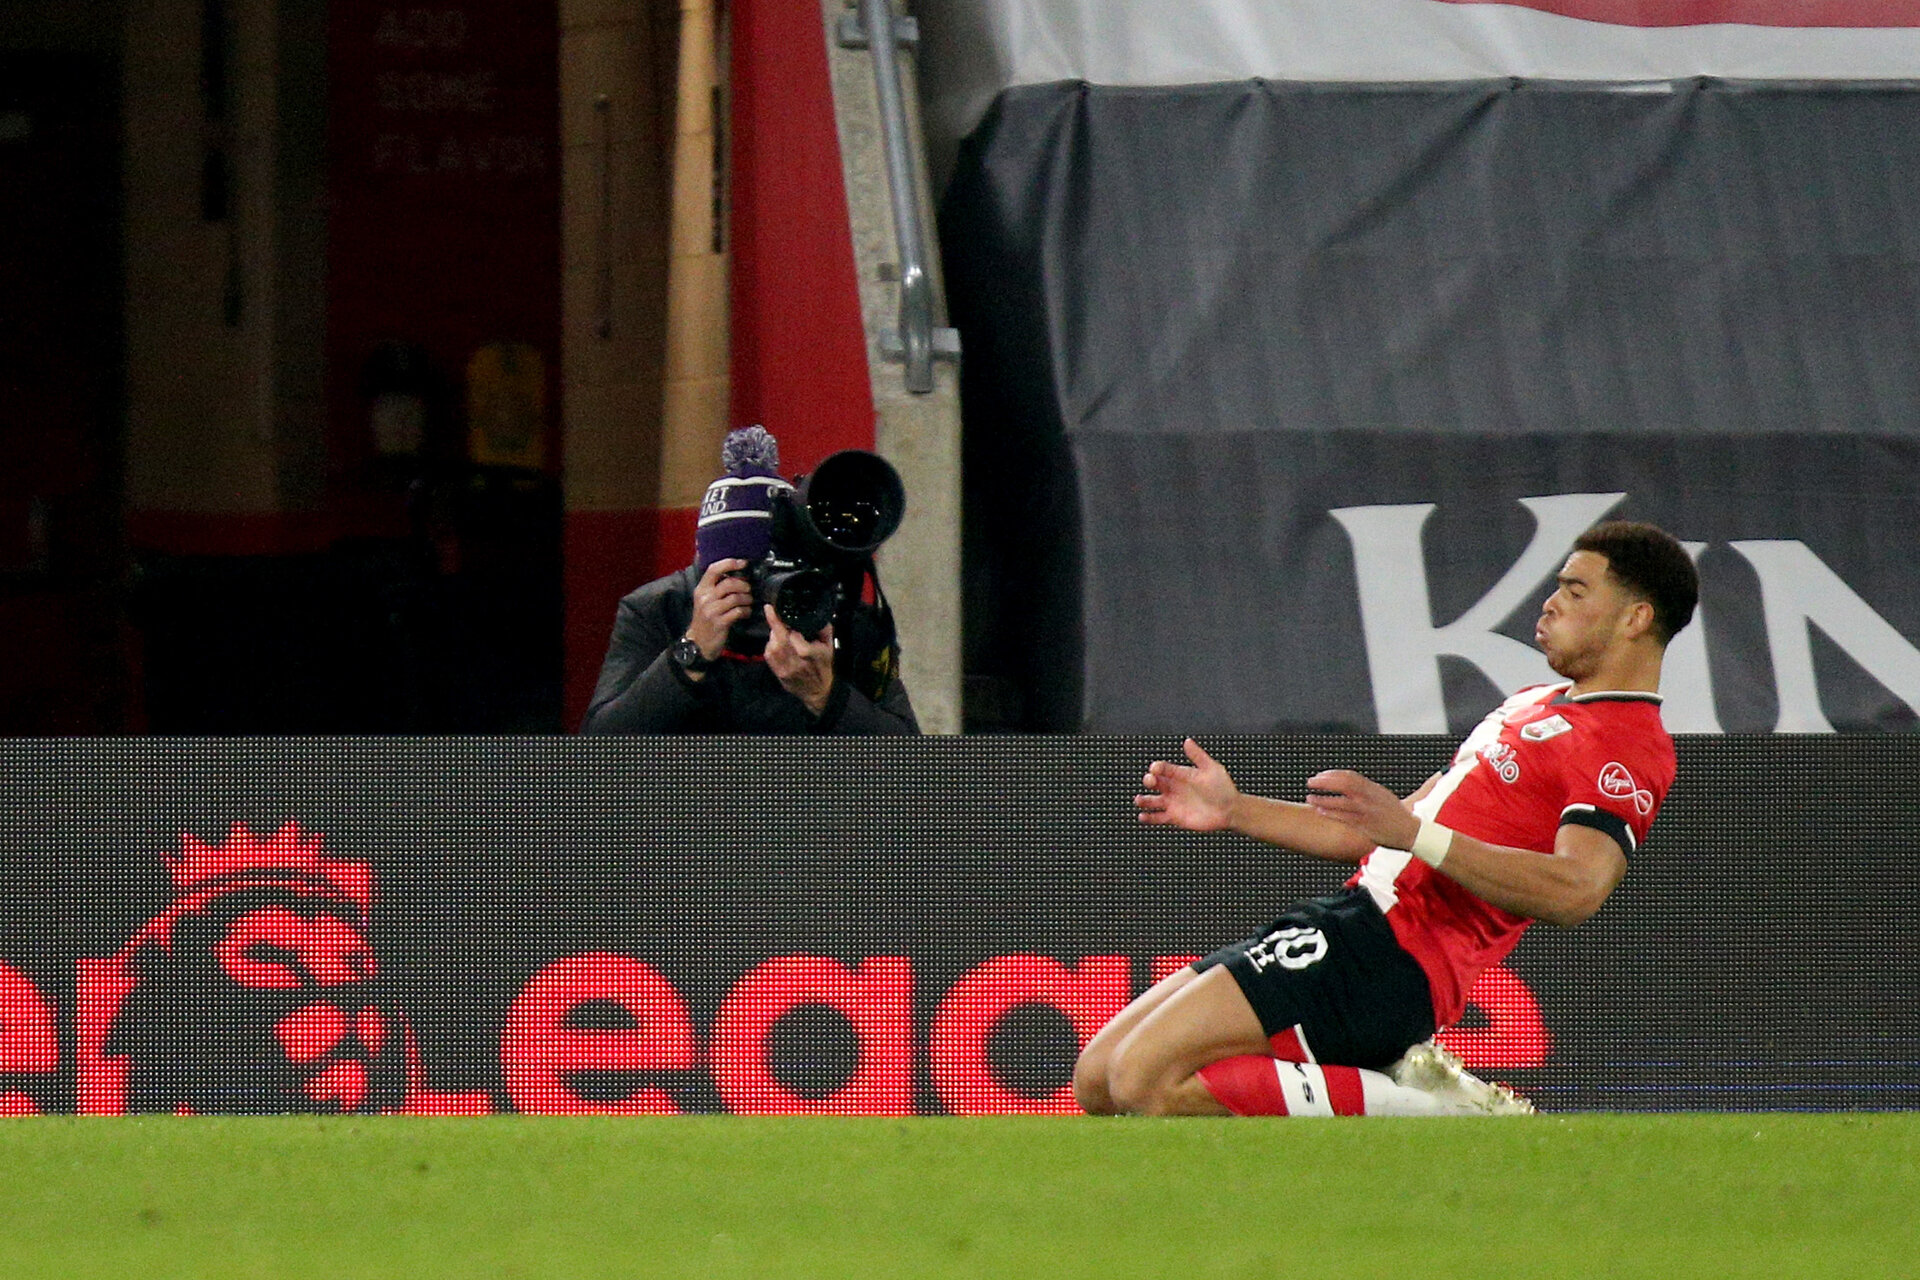 SOUTHAMPTON, ENGLAND - NOVEMBER 06: Ché Adams of goal celebration during the Premier League match between Southampton and Newcastle United at St Mary's Stadium on November 06, 2020 in Southampton, England. Sporting stadiums around the UK remain under strict restrictions due to the Coronavirus Pandemic as Government social distancing laws prohibit fans inside venues resulting in games being played behind closed doors. (Photo by Matt Watson/Southampton FC via Getty Images)